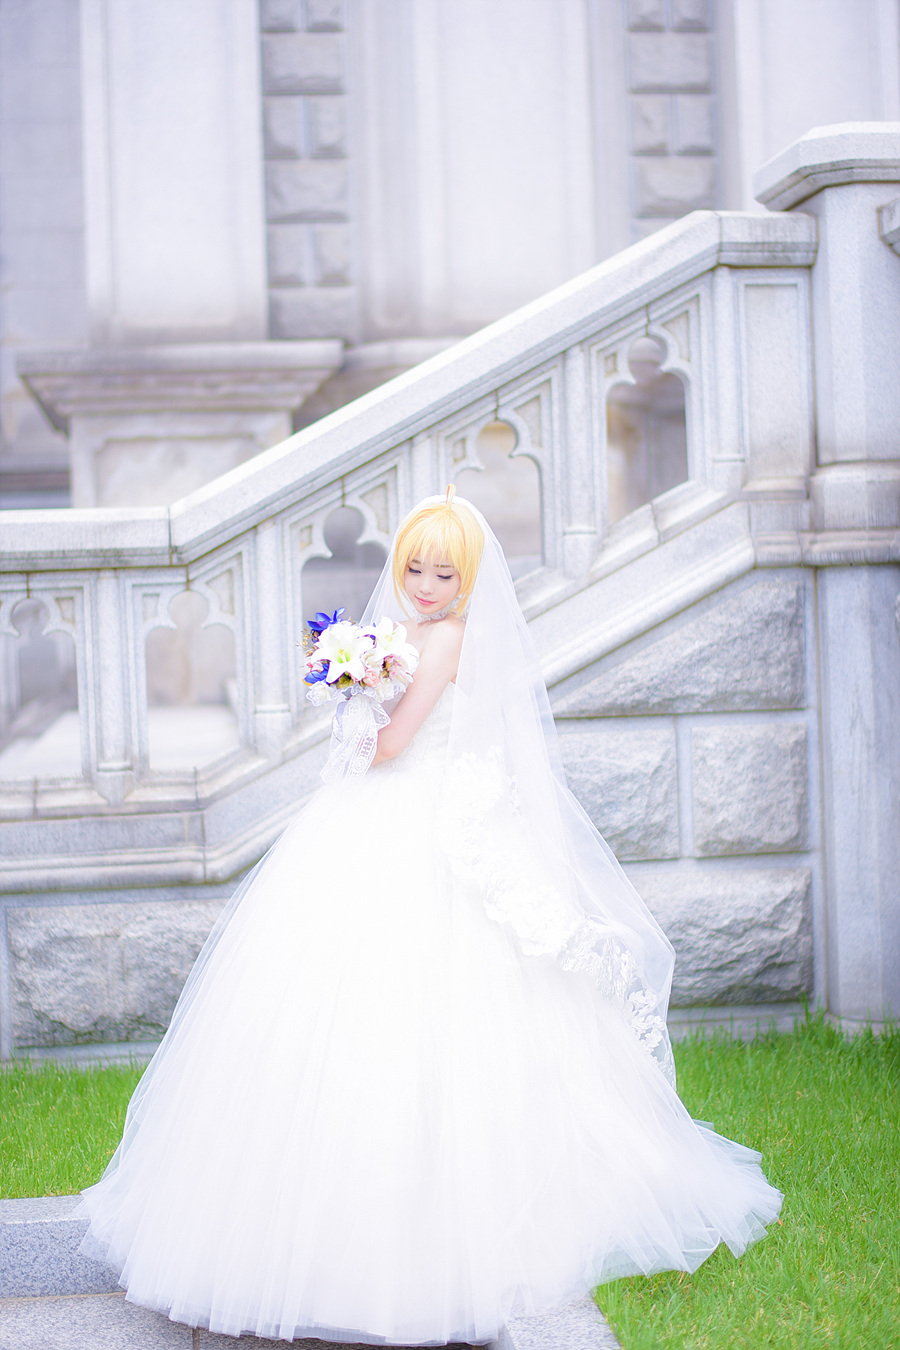 saber wedding dress cosplay 5 cosplay know your meme